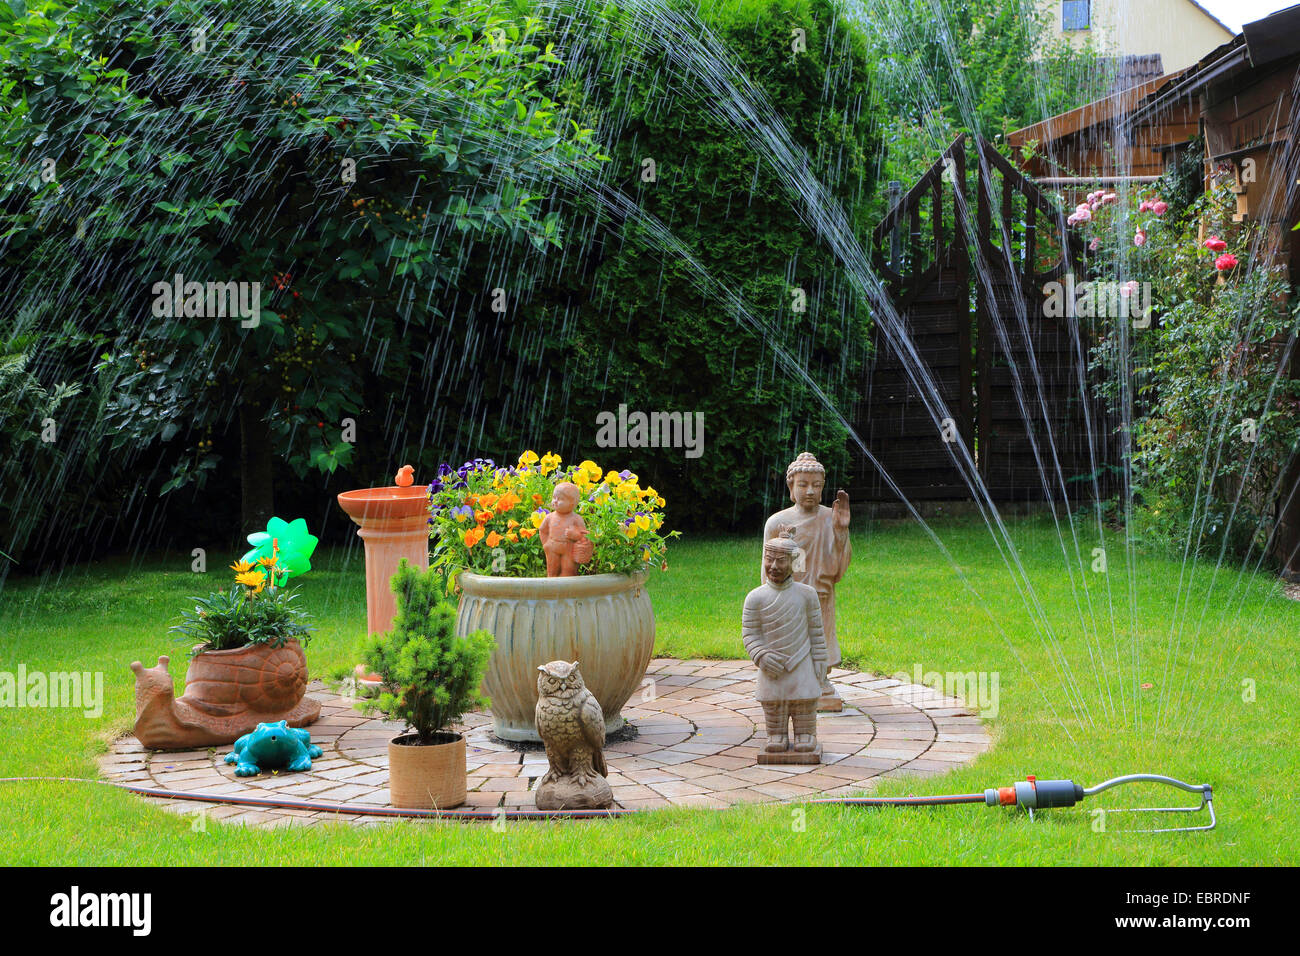 sprinkling lawn and garden decoration, Germany Stock Photo